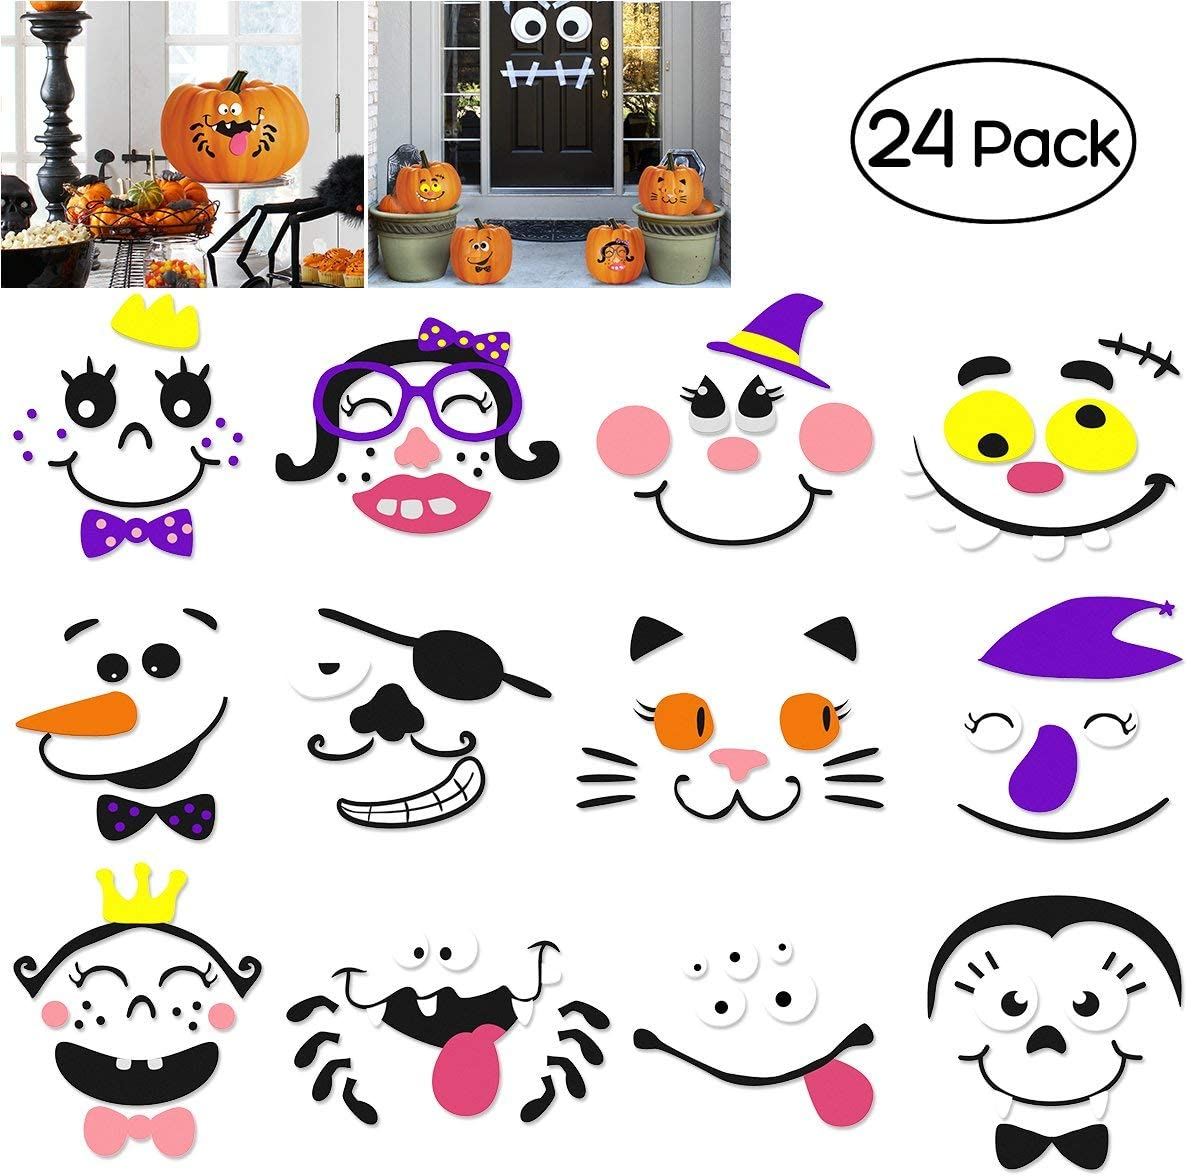 Foam Pumpkin Decorations Craft Kit, Halloween Crafts for Kids as Halloween Party Party Supplies, 24 Sets in 2 Packs